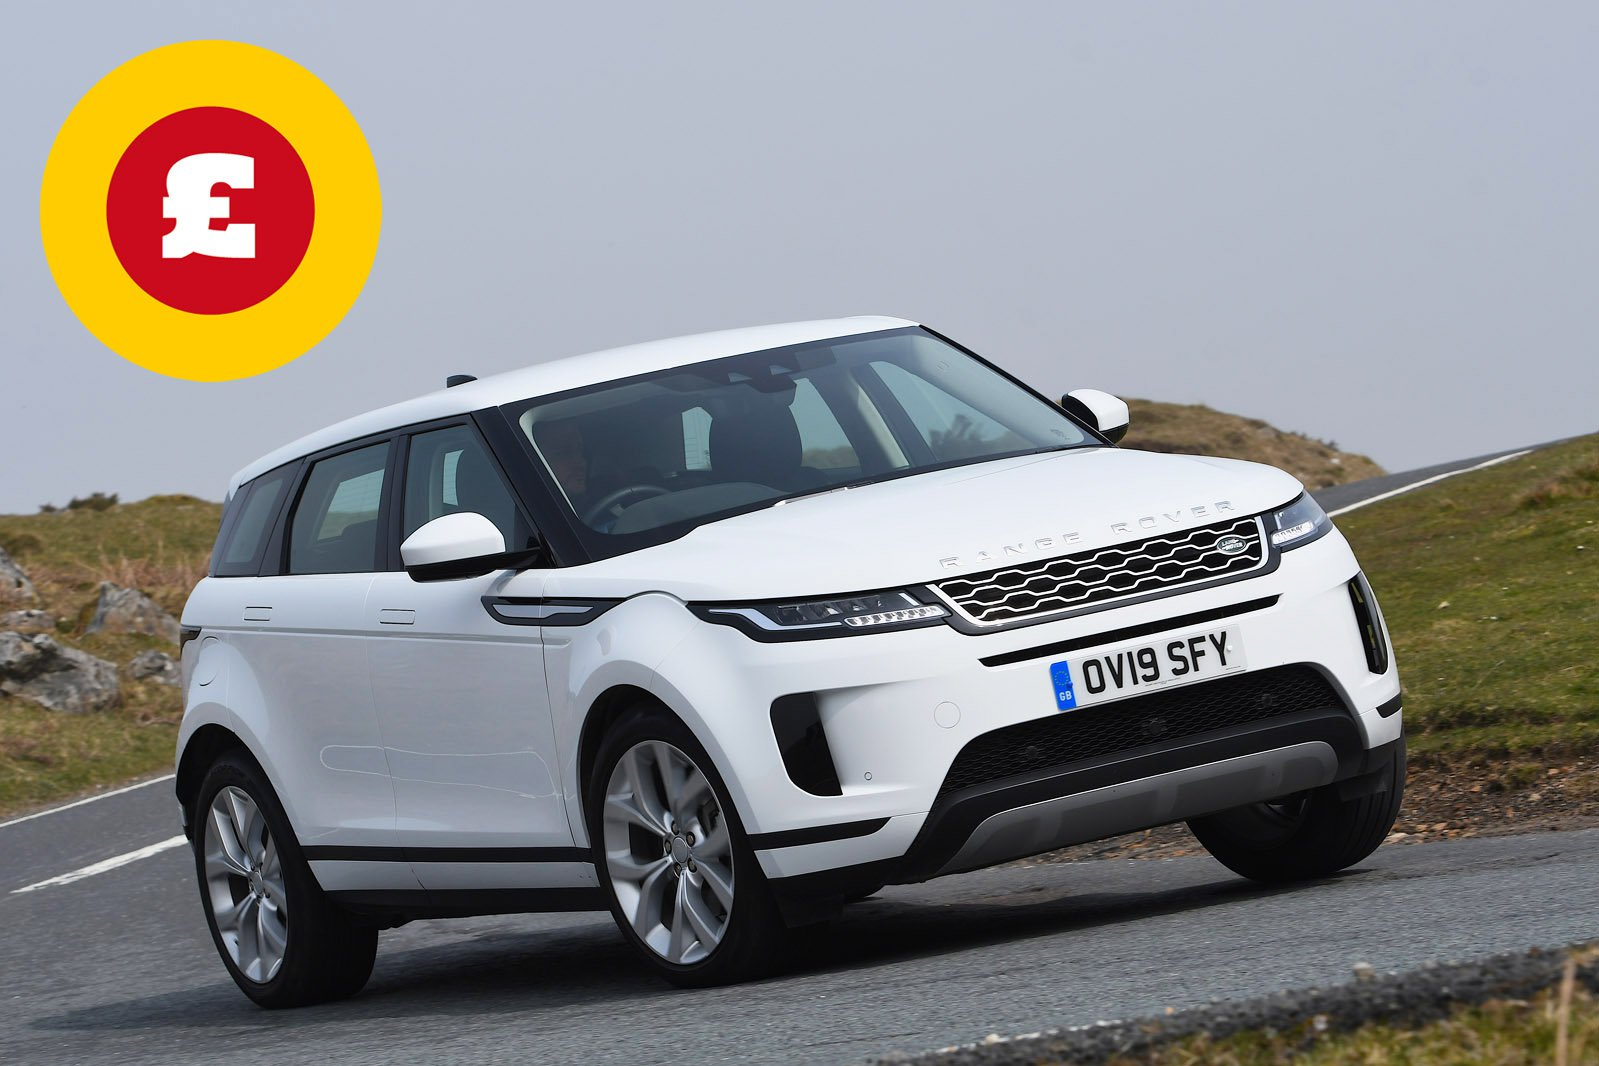 Range Rover Evoque with Target Price logo